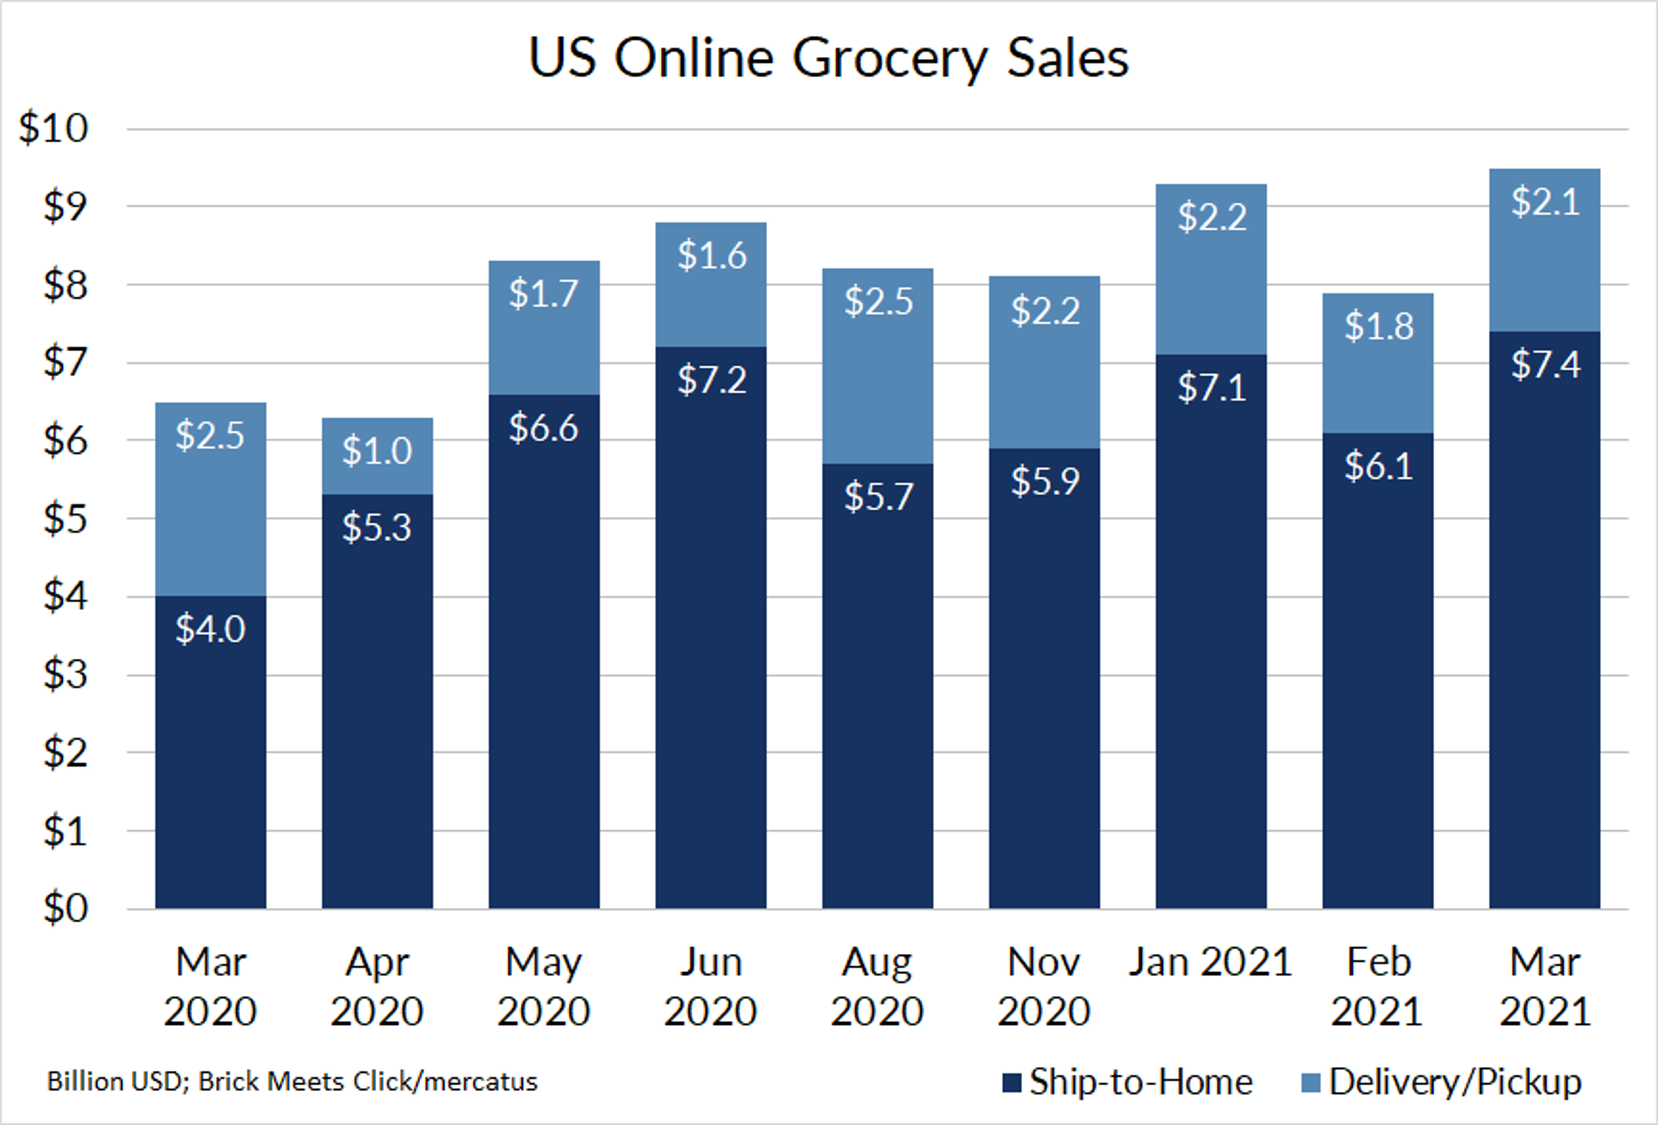 Convenience in Packaging and Portability are Important for Growing Dairy Industry Online Grocery Sales